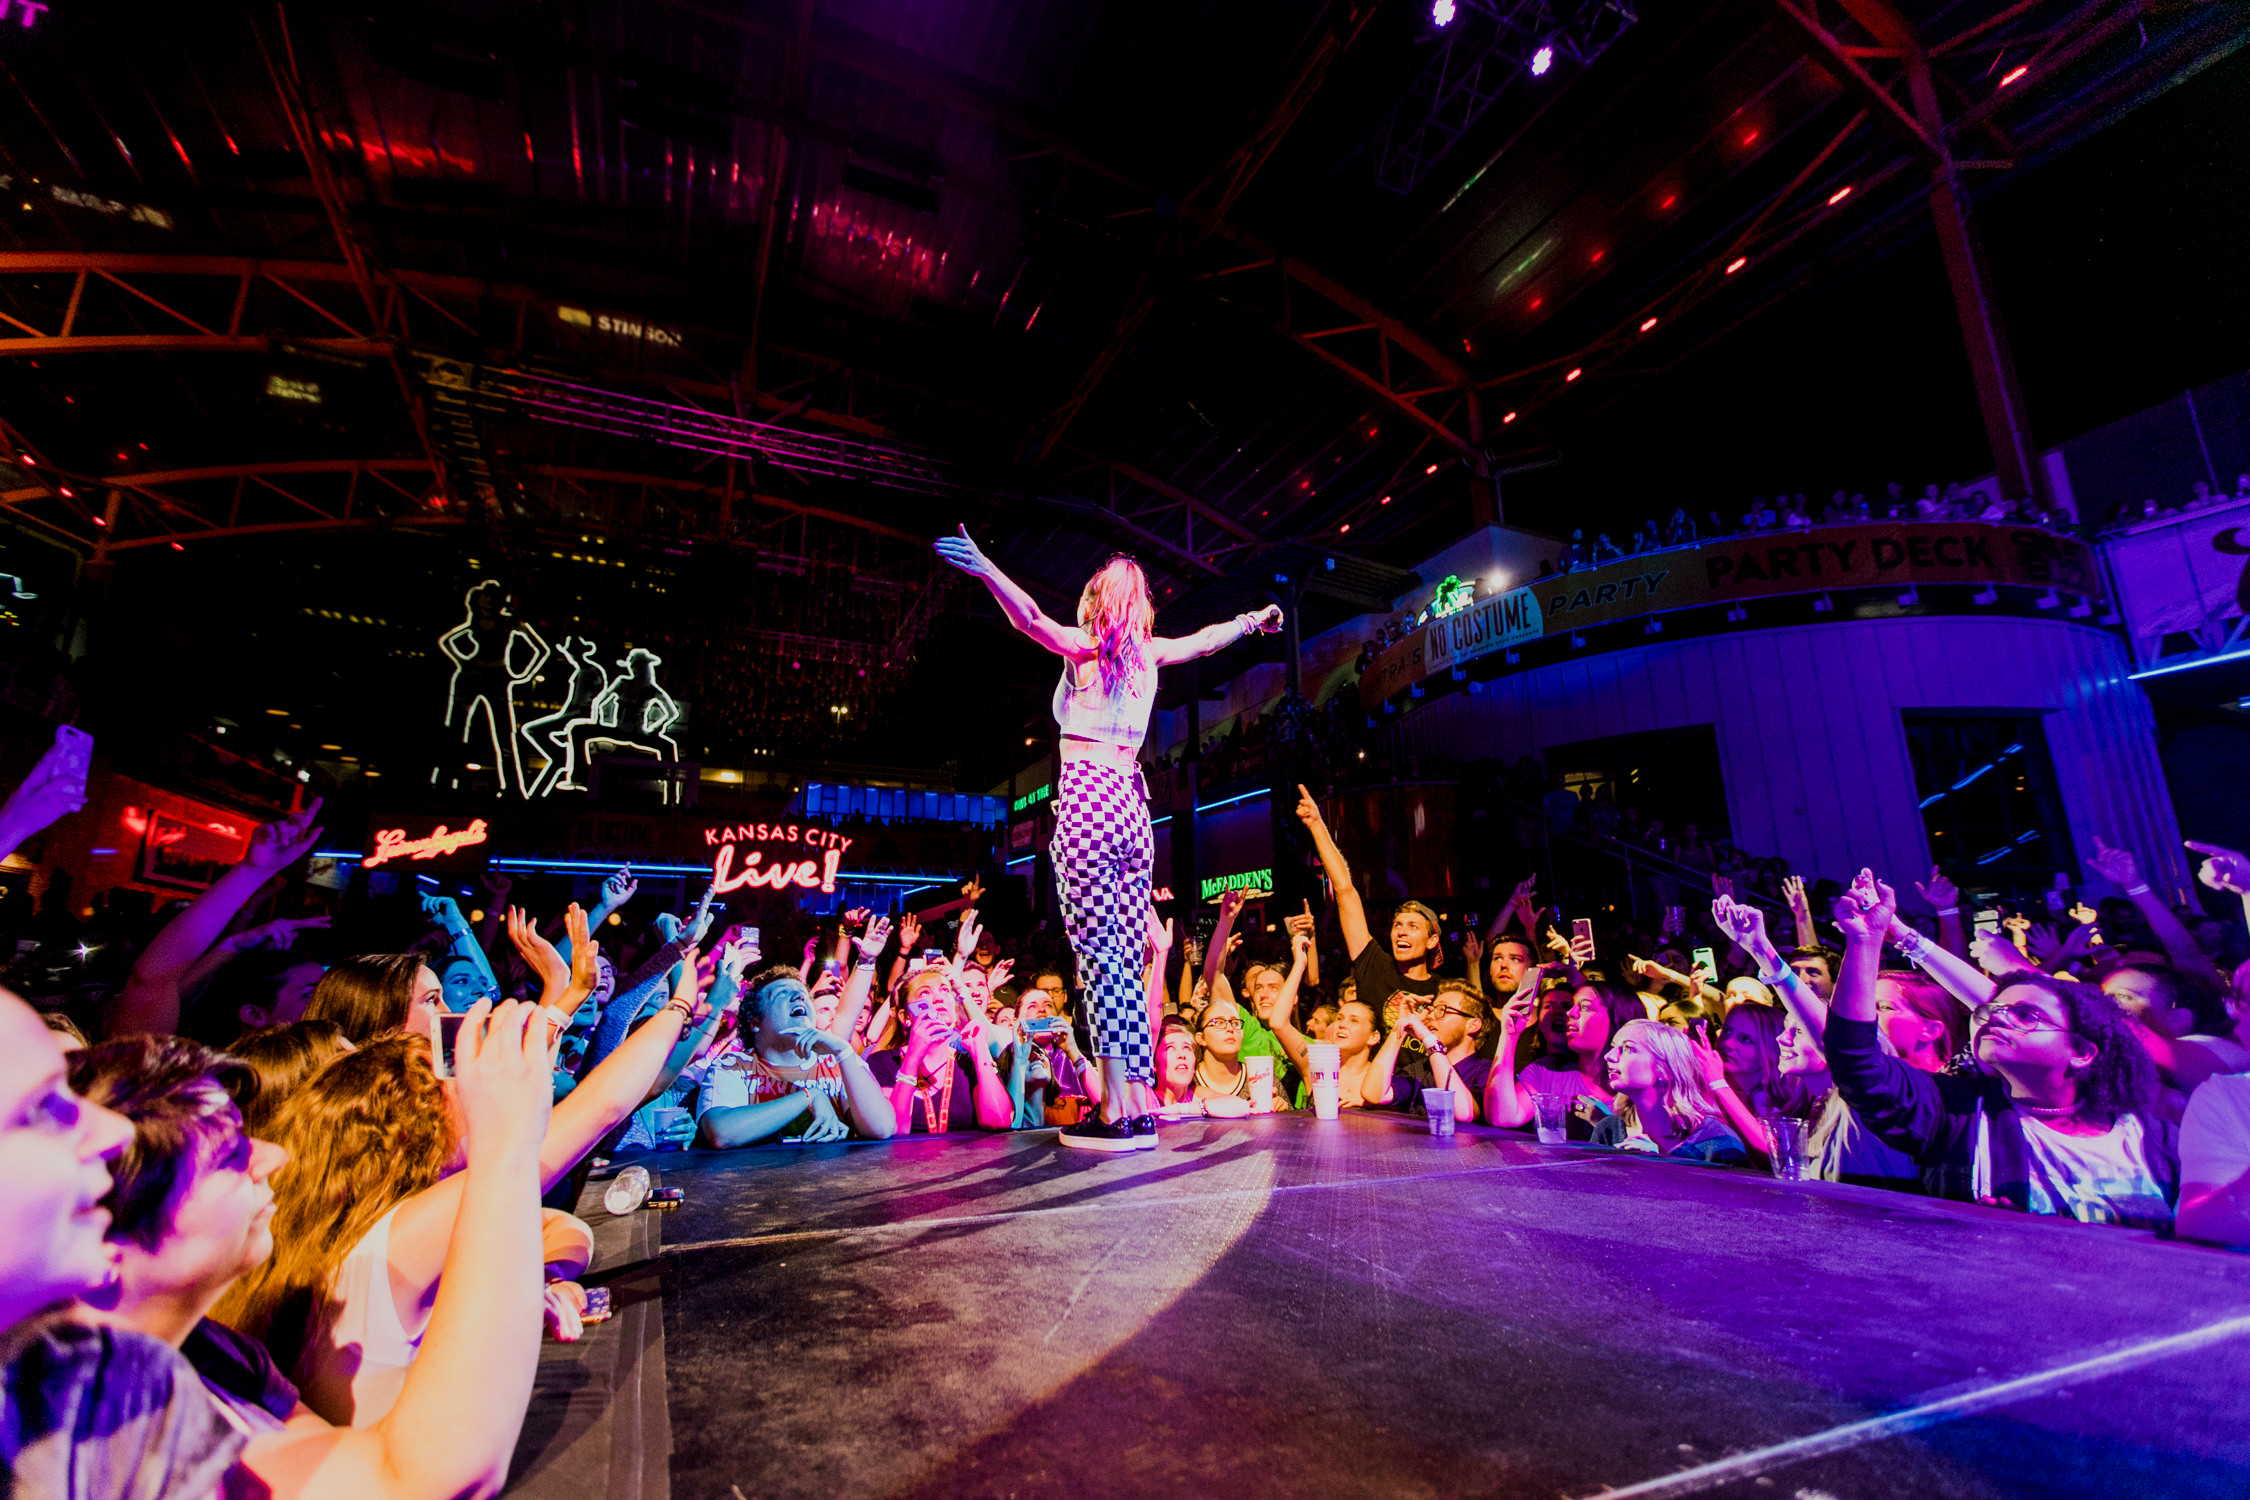 mandy-on-stage-power-light-district-kcmo-crowd-misterwives-AnnaLeeMedia